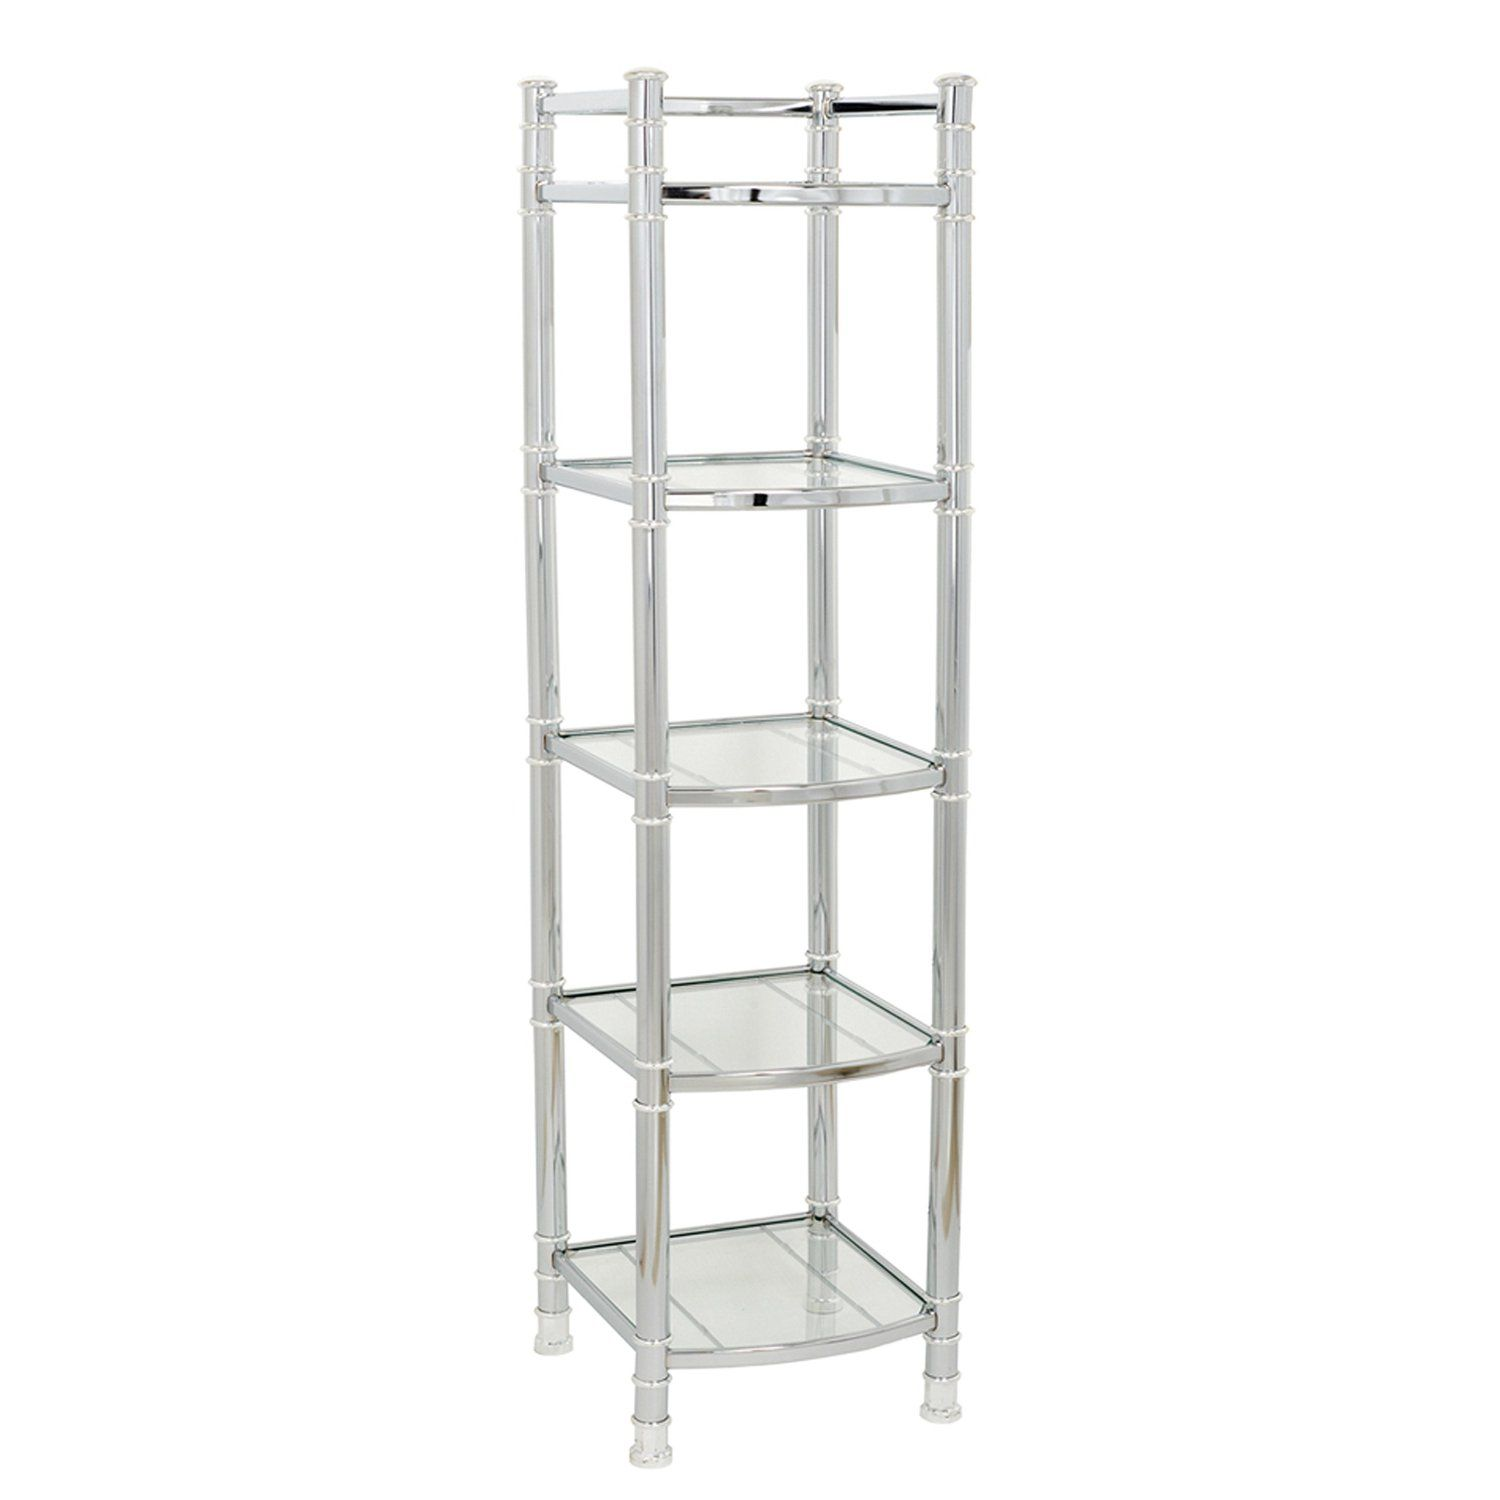 chrome in with wall bathroom train best racks rail bars shelves rack shelf mounted chic polished accessory towel hotel